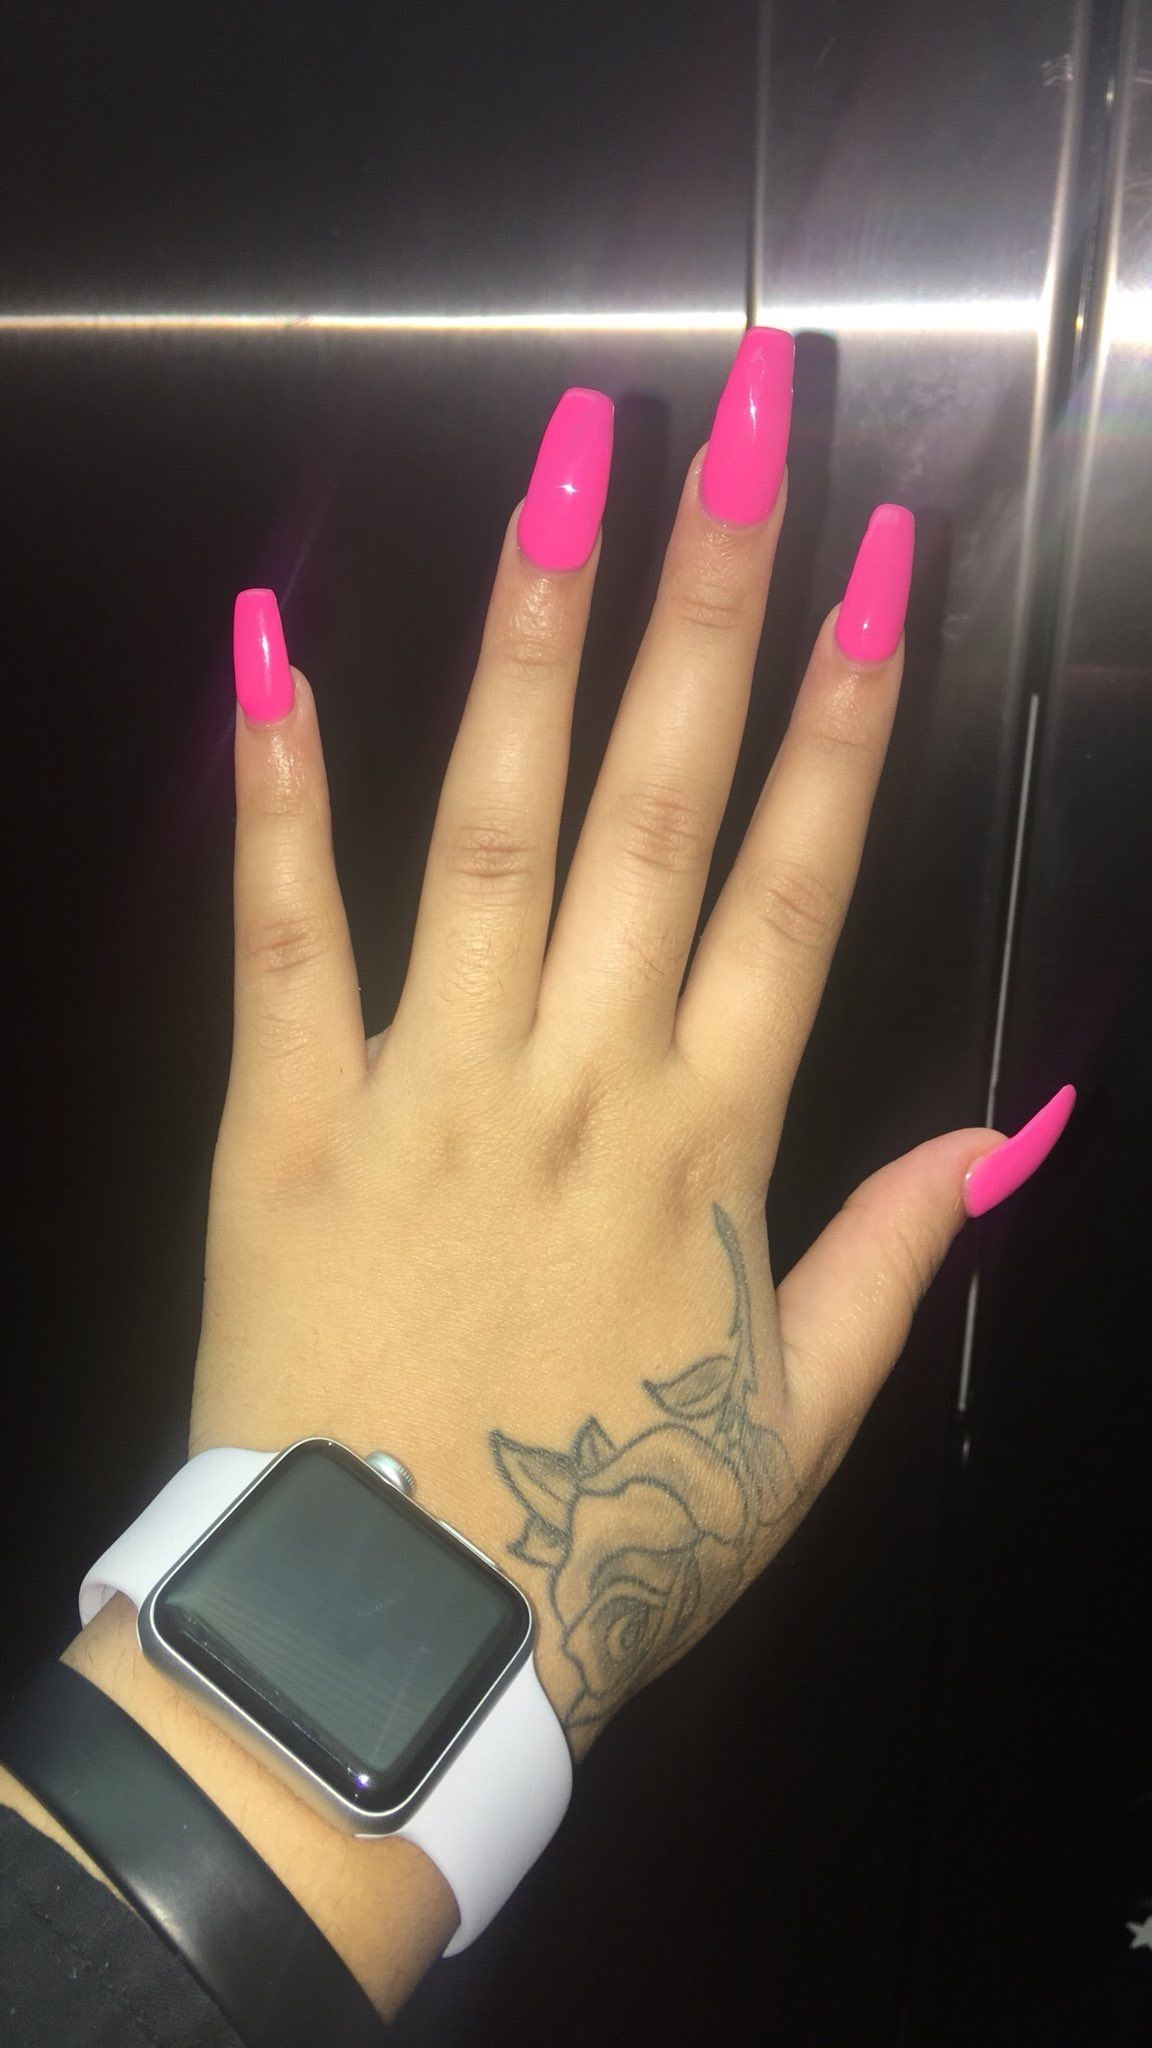 Pin by Pivervale on Nails | Pink acrylic nails, Nail ...